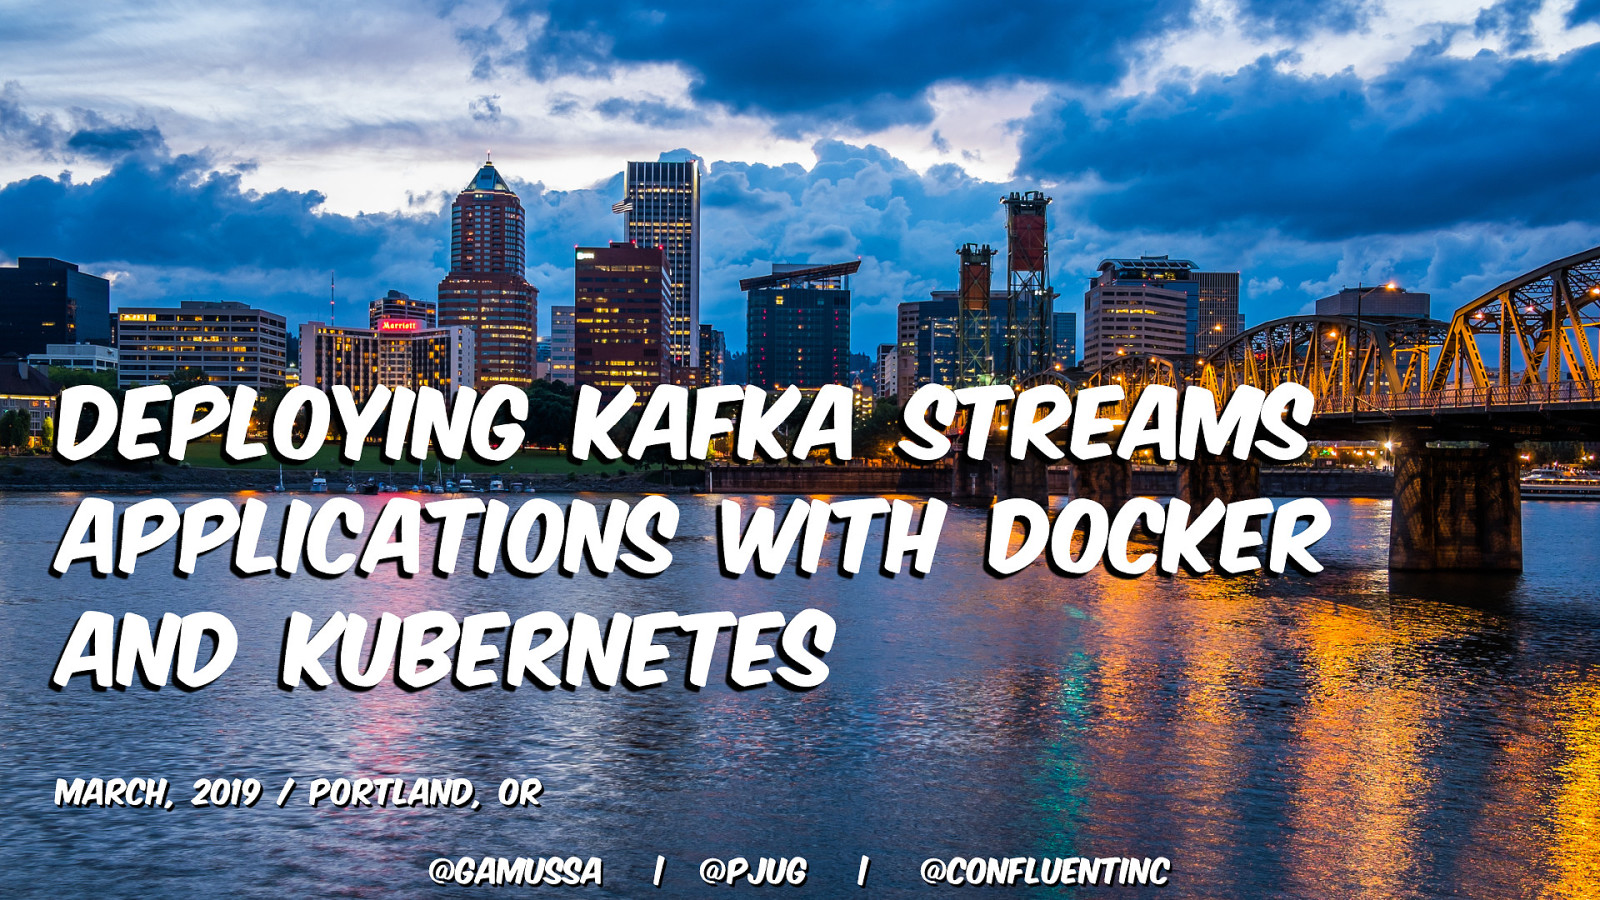 Deploying Kafka Streams Applications with Docker and Kubernetes